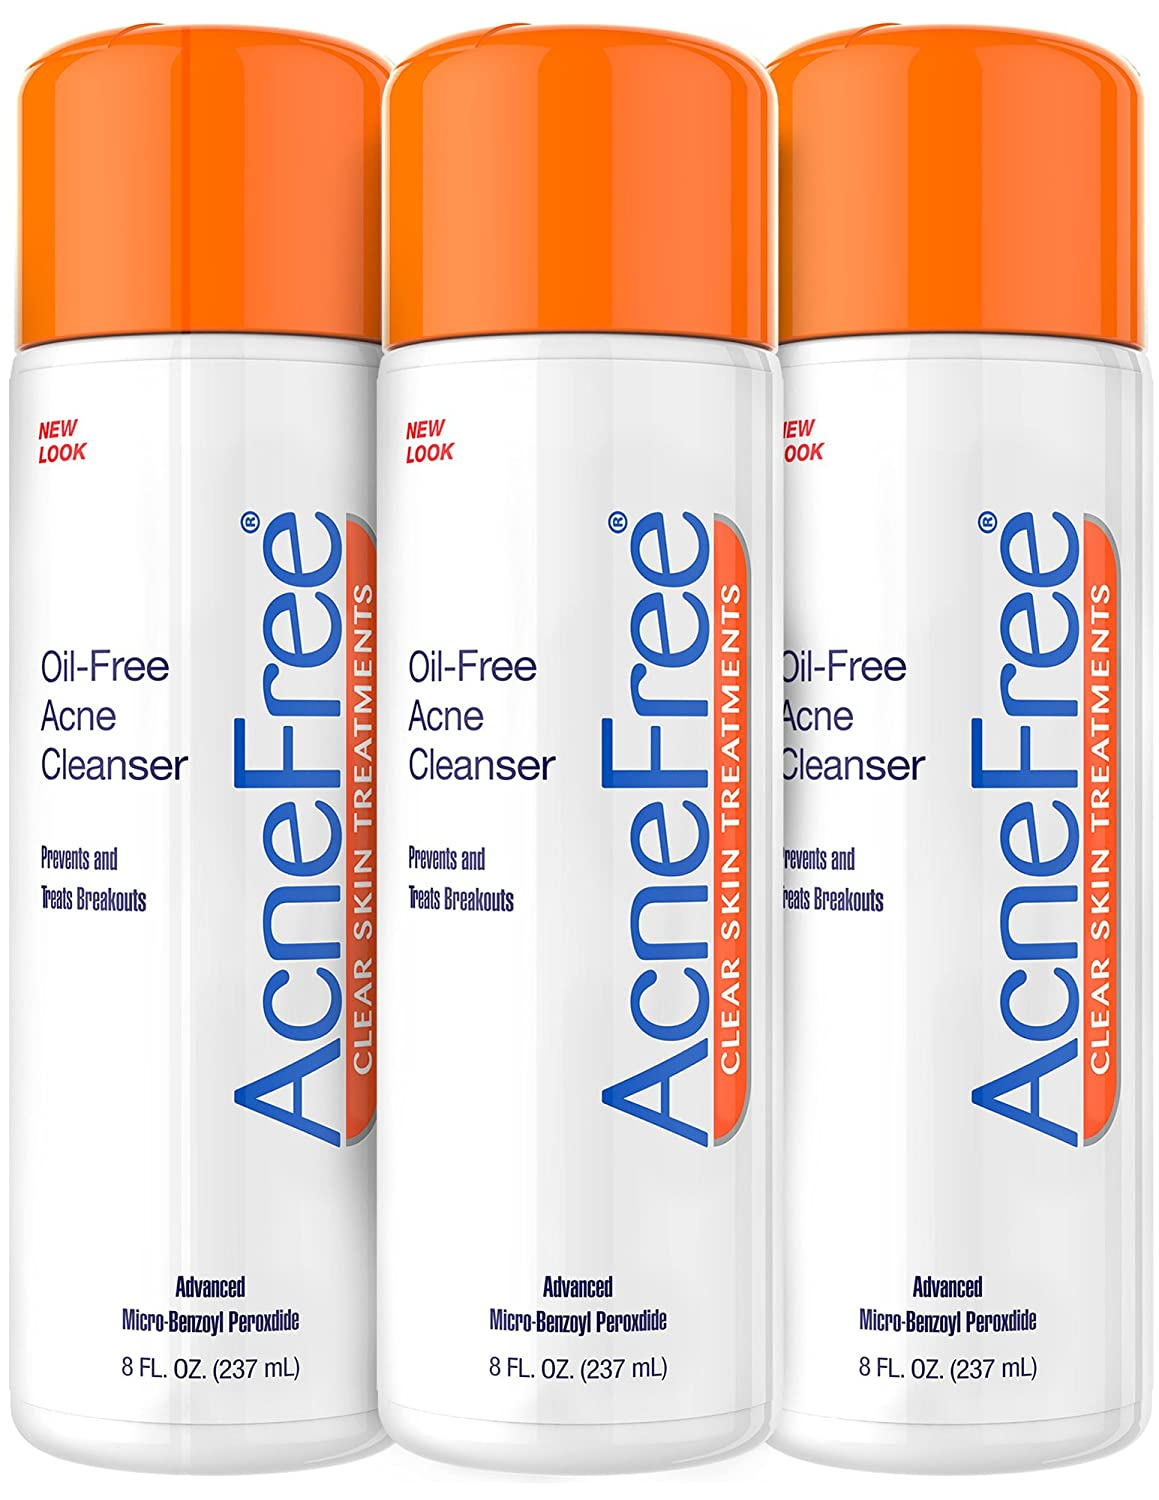 AcneFree Oil-Free Acne Cleanser, Benzoyl Peroxide 2.5% Acne Face Wash with Glycolic Acid to Prevent and Treat Breakouts, 8 Ounce 301871613086